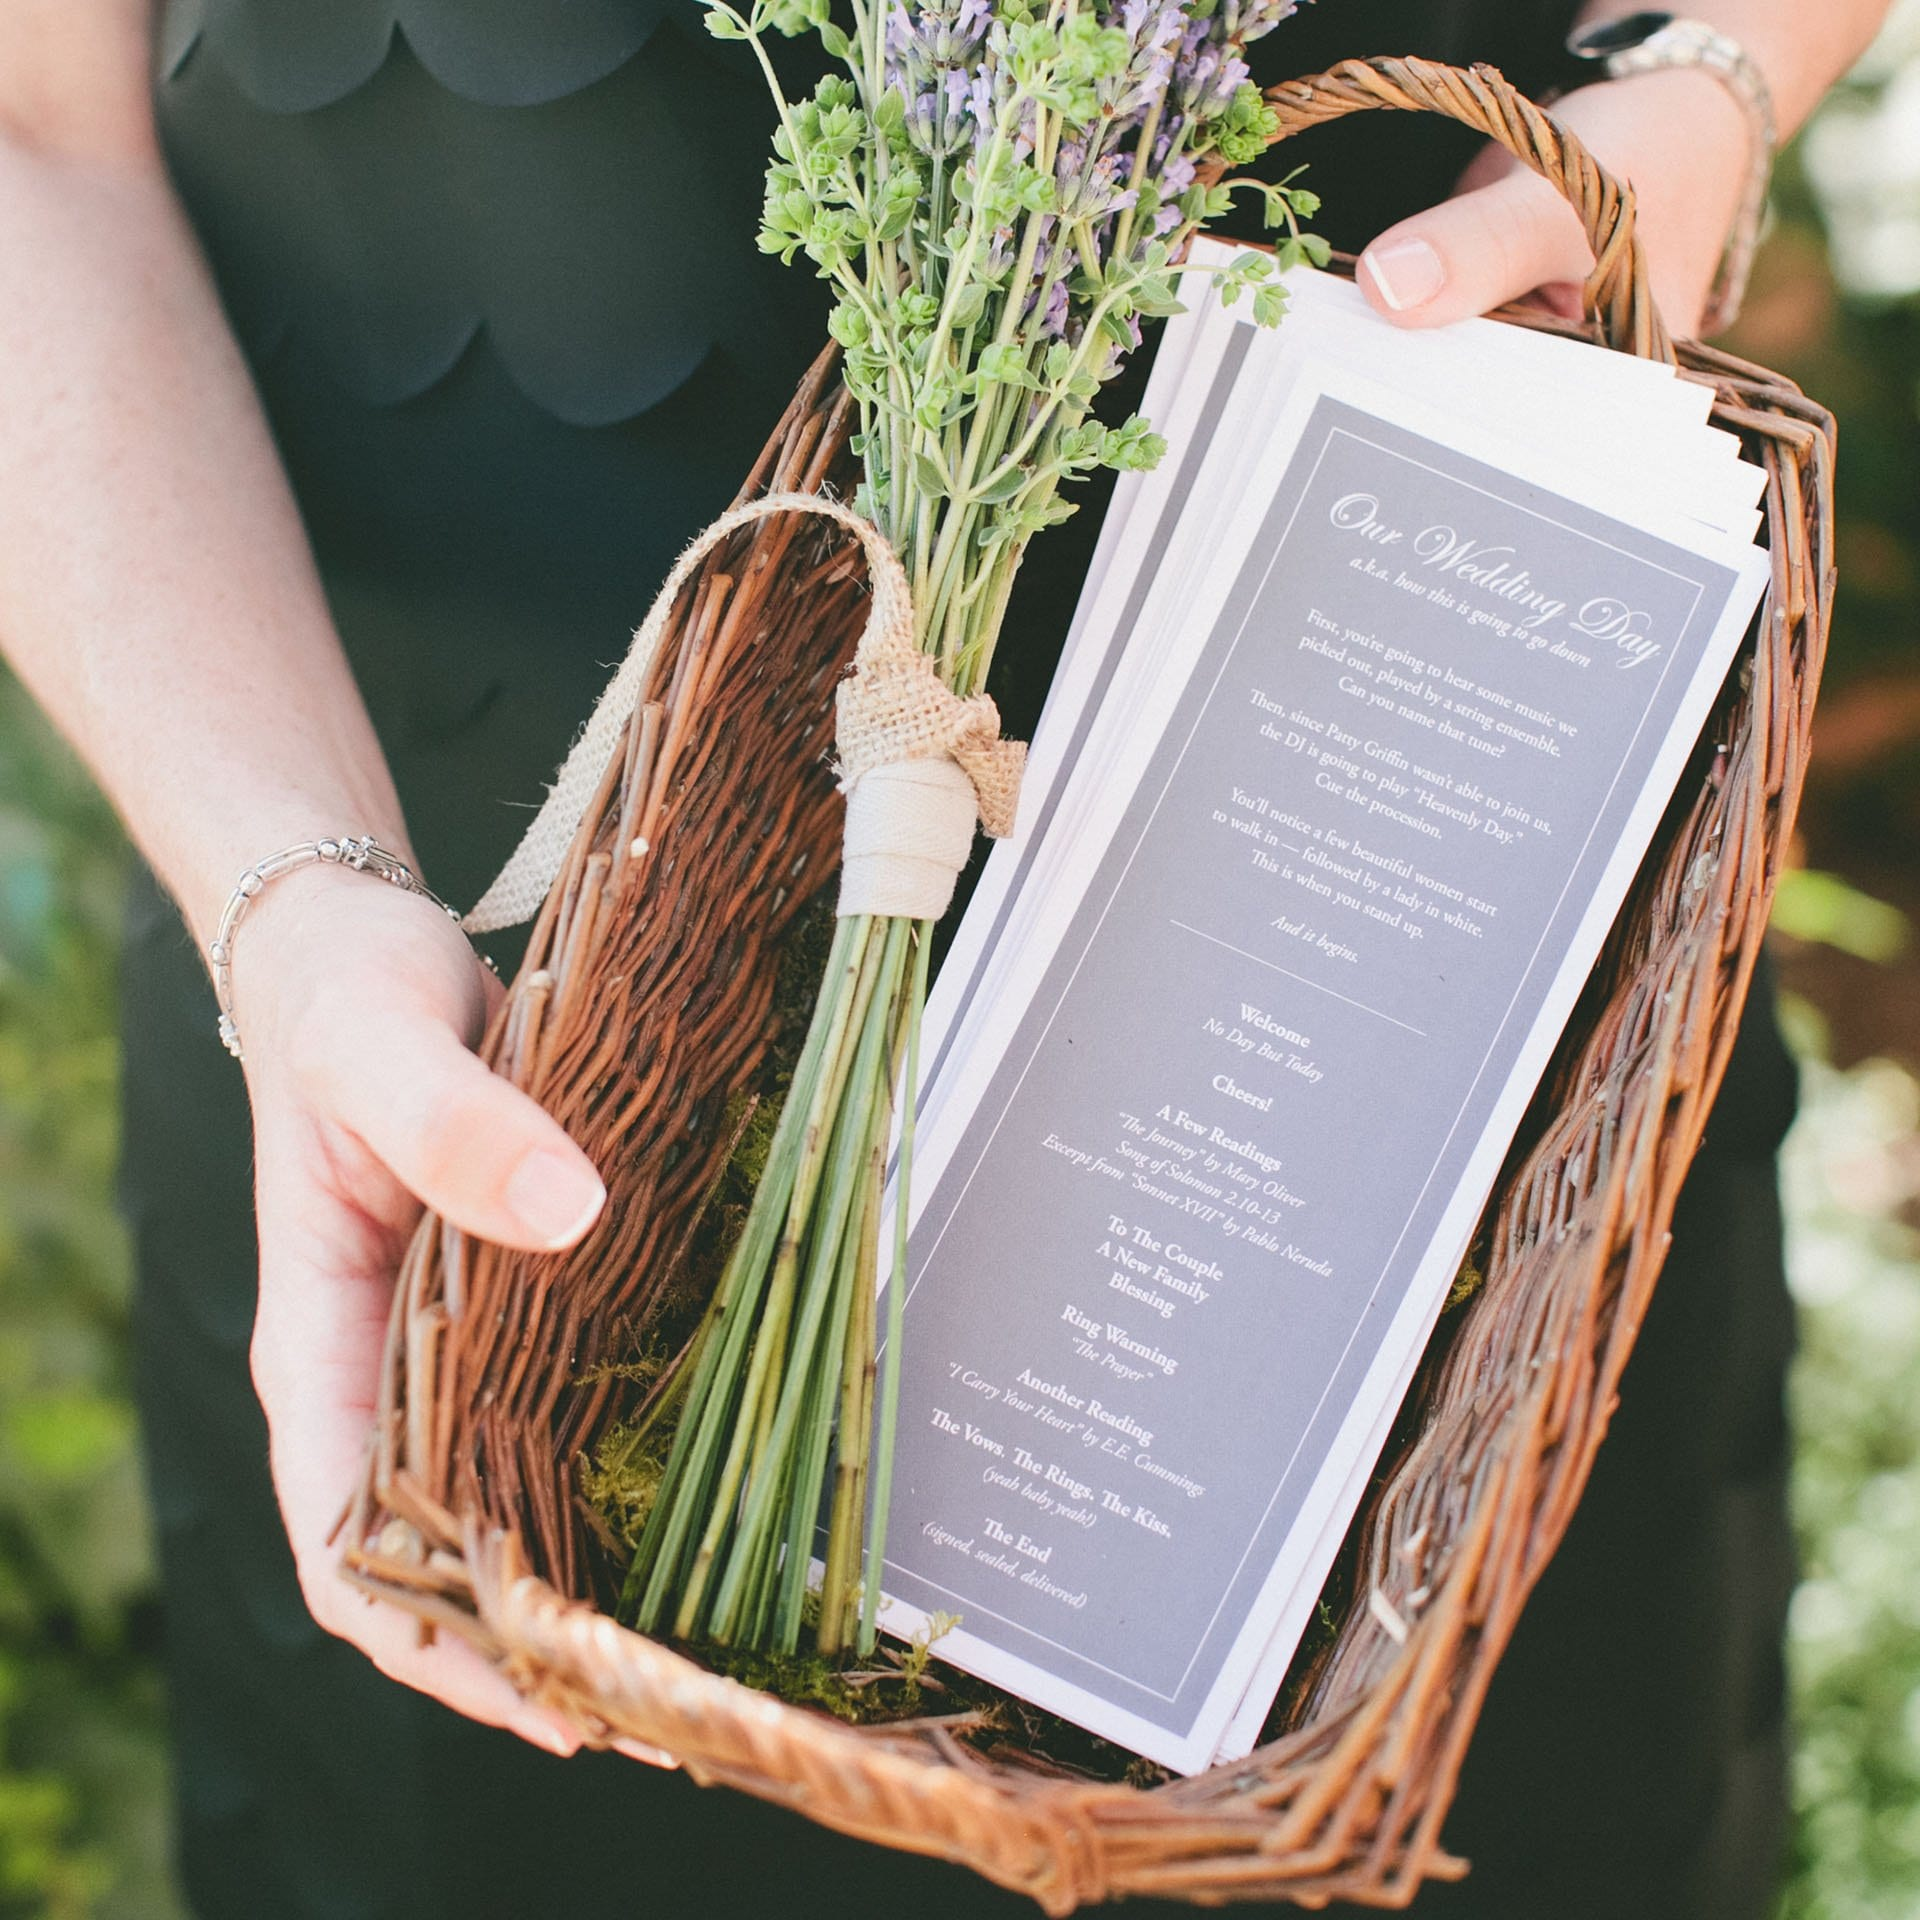 Seven Branches Venue and Inn - Wedding Invitation in woven basket with lavender